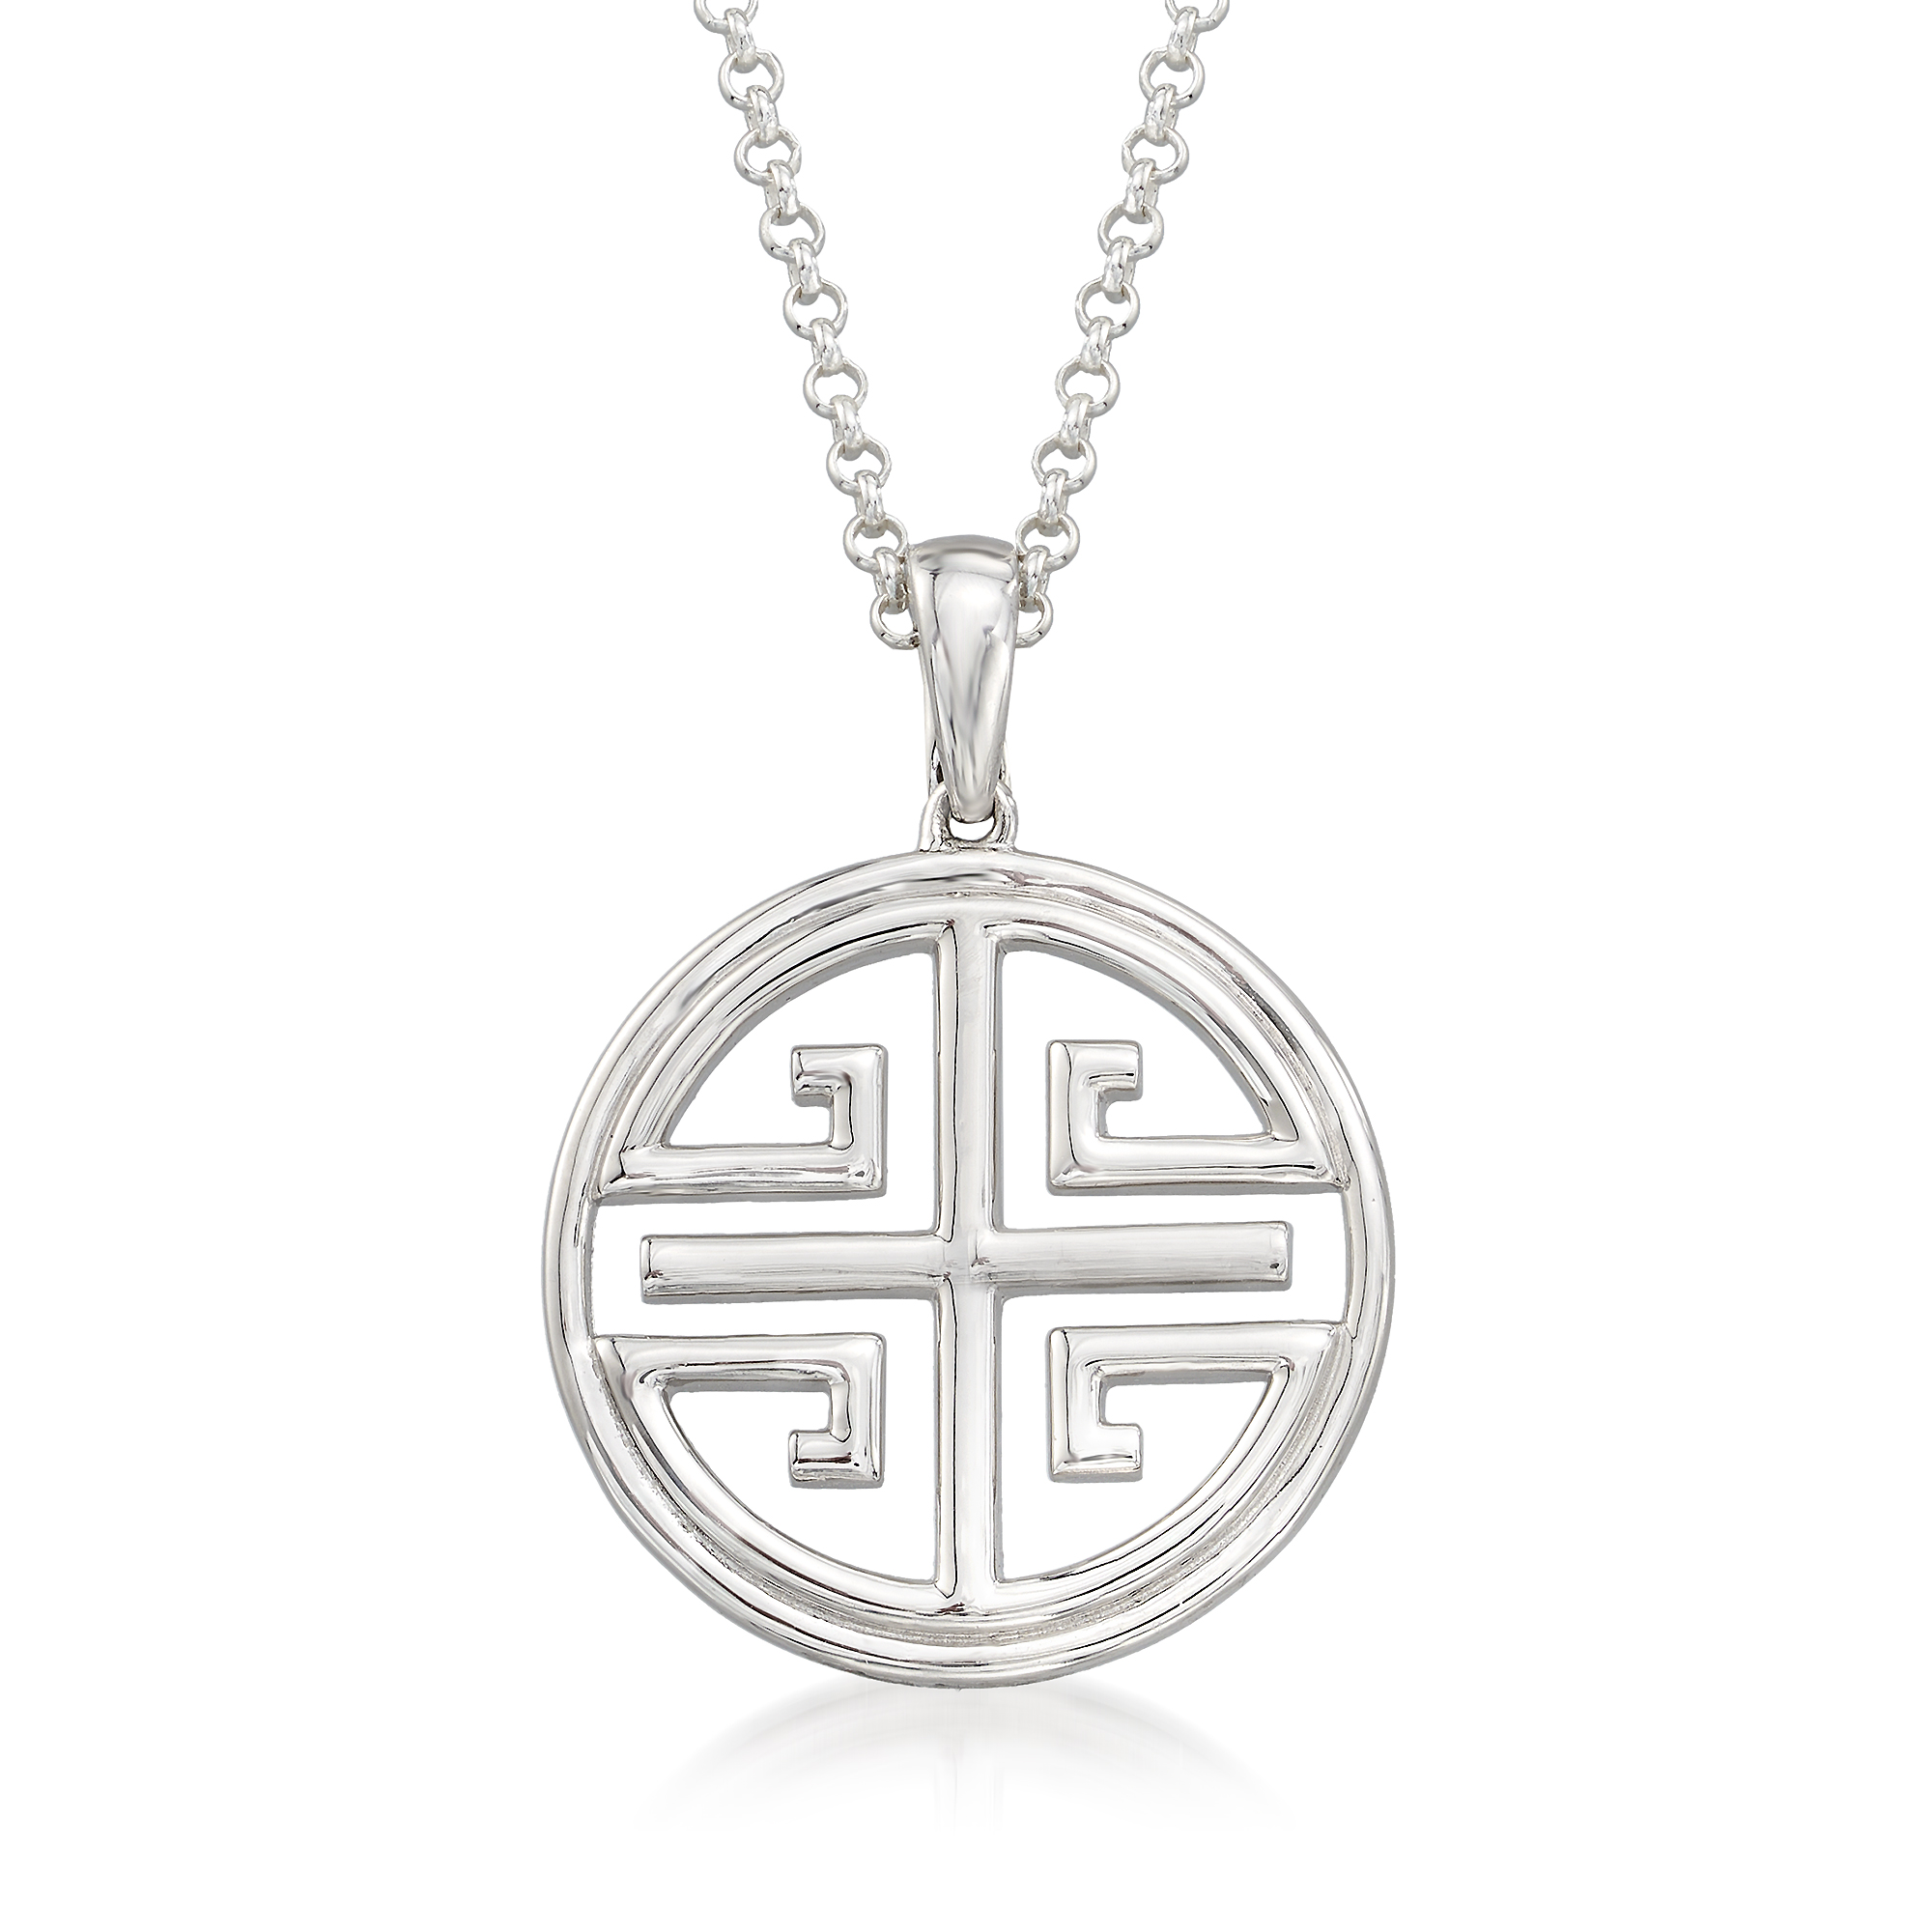 1 1//16 inch Tall Sterling Silver Chinese Character for Honesty Pendant